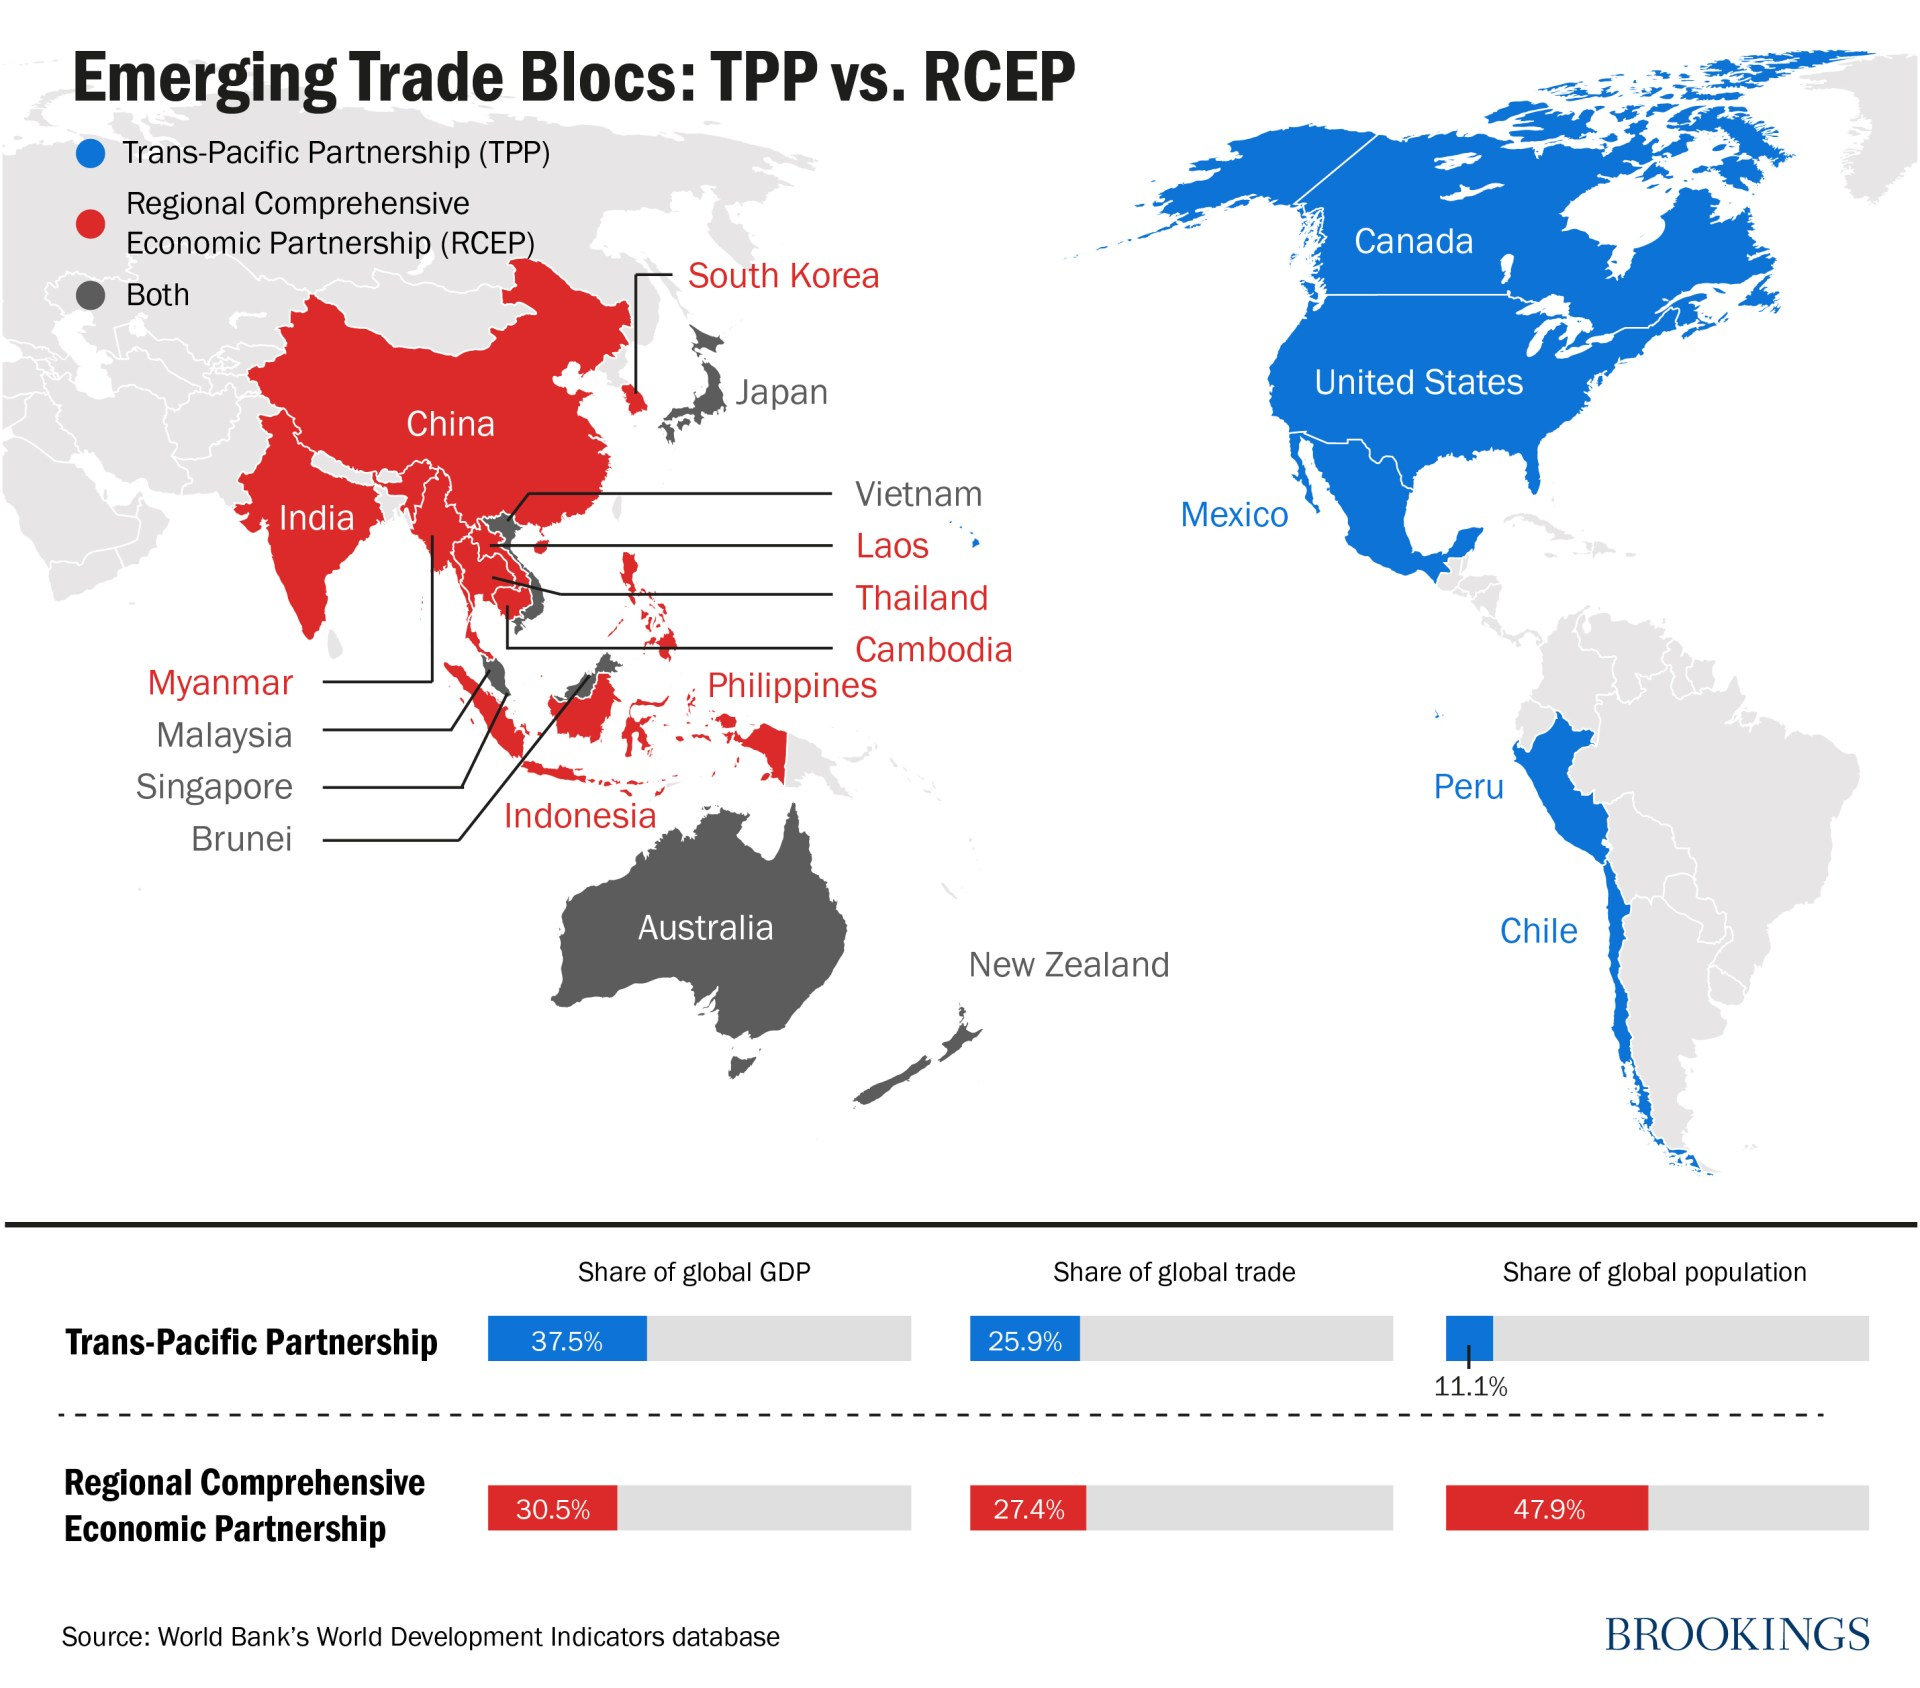 Map showing countries belonging to TPP and RCEP.